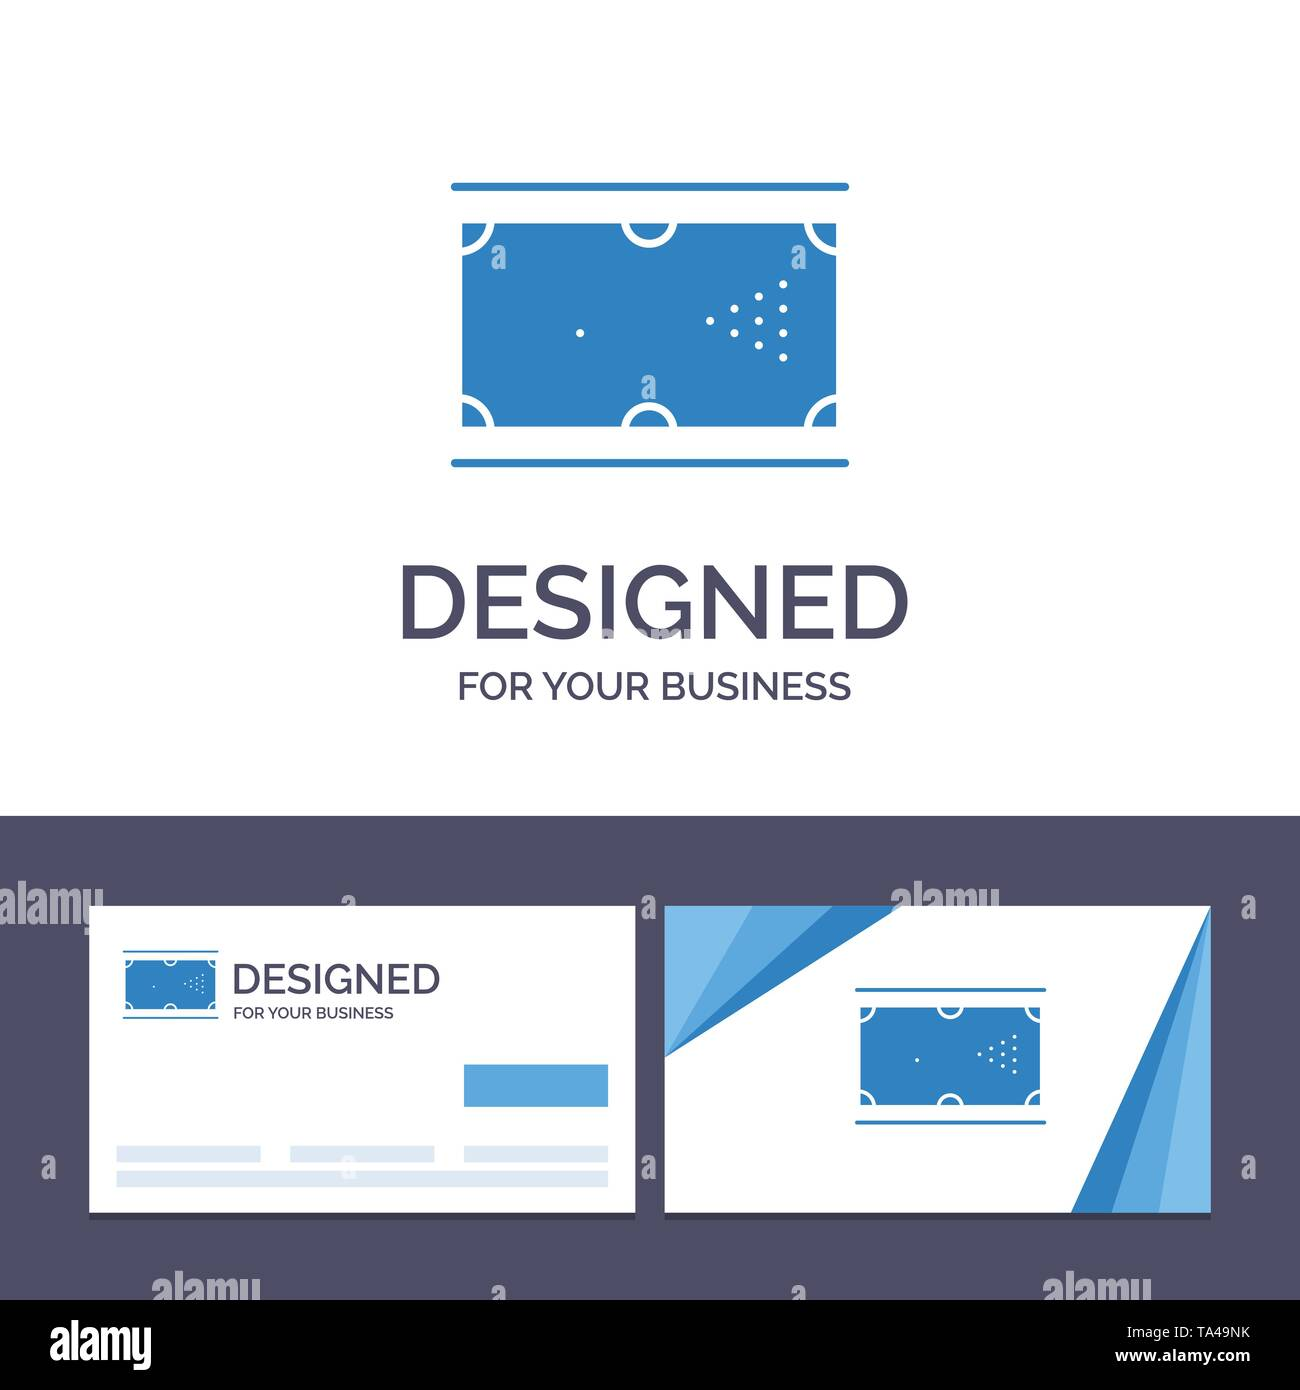 Creative Business Card and Logo template Billiards, Cue, Game, Pocket, Pool Vector Illustration - Stock Image